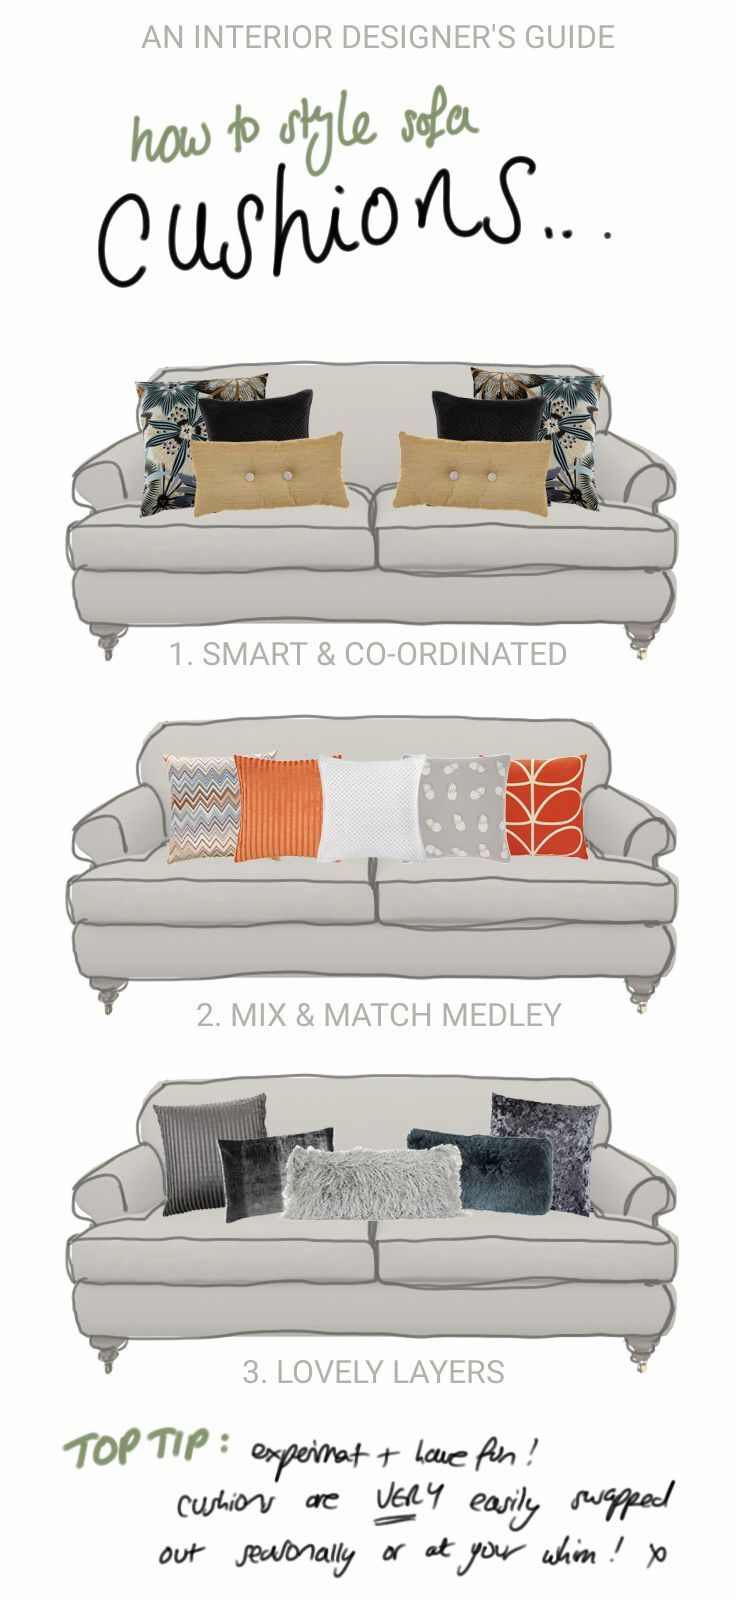 How To Style Sofa Cushions Like An Interior Designer Couch Pillow